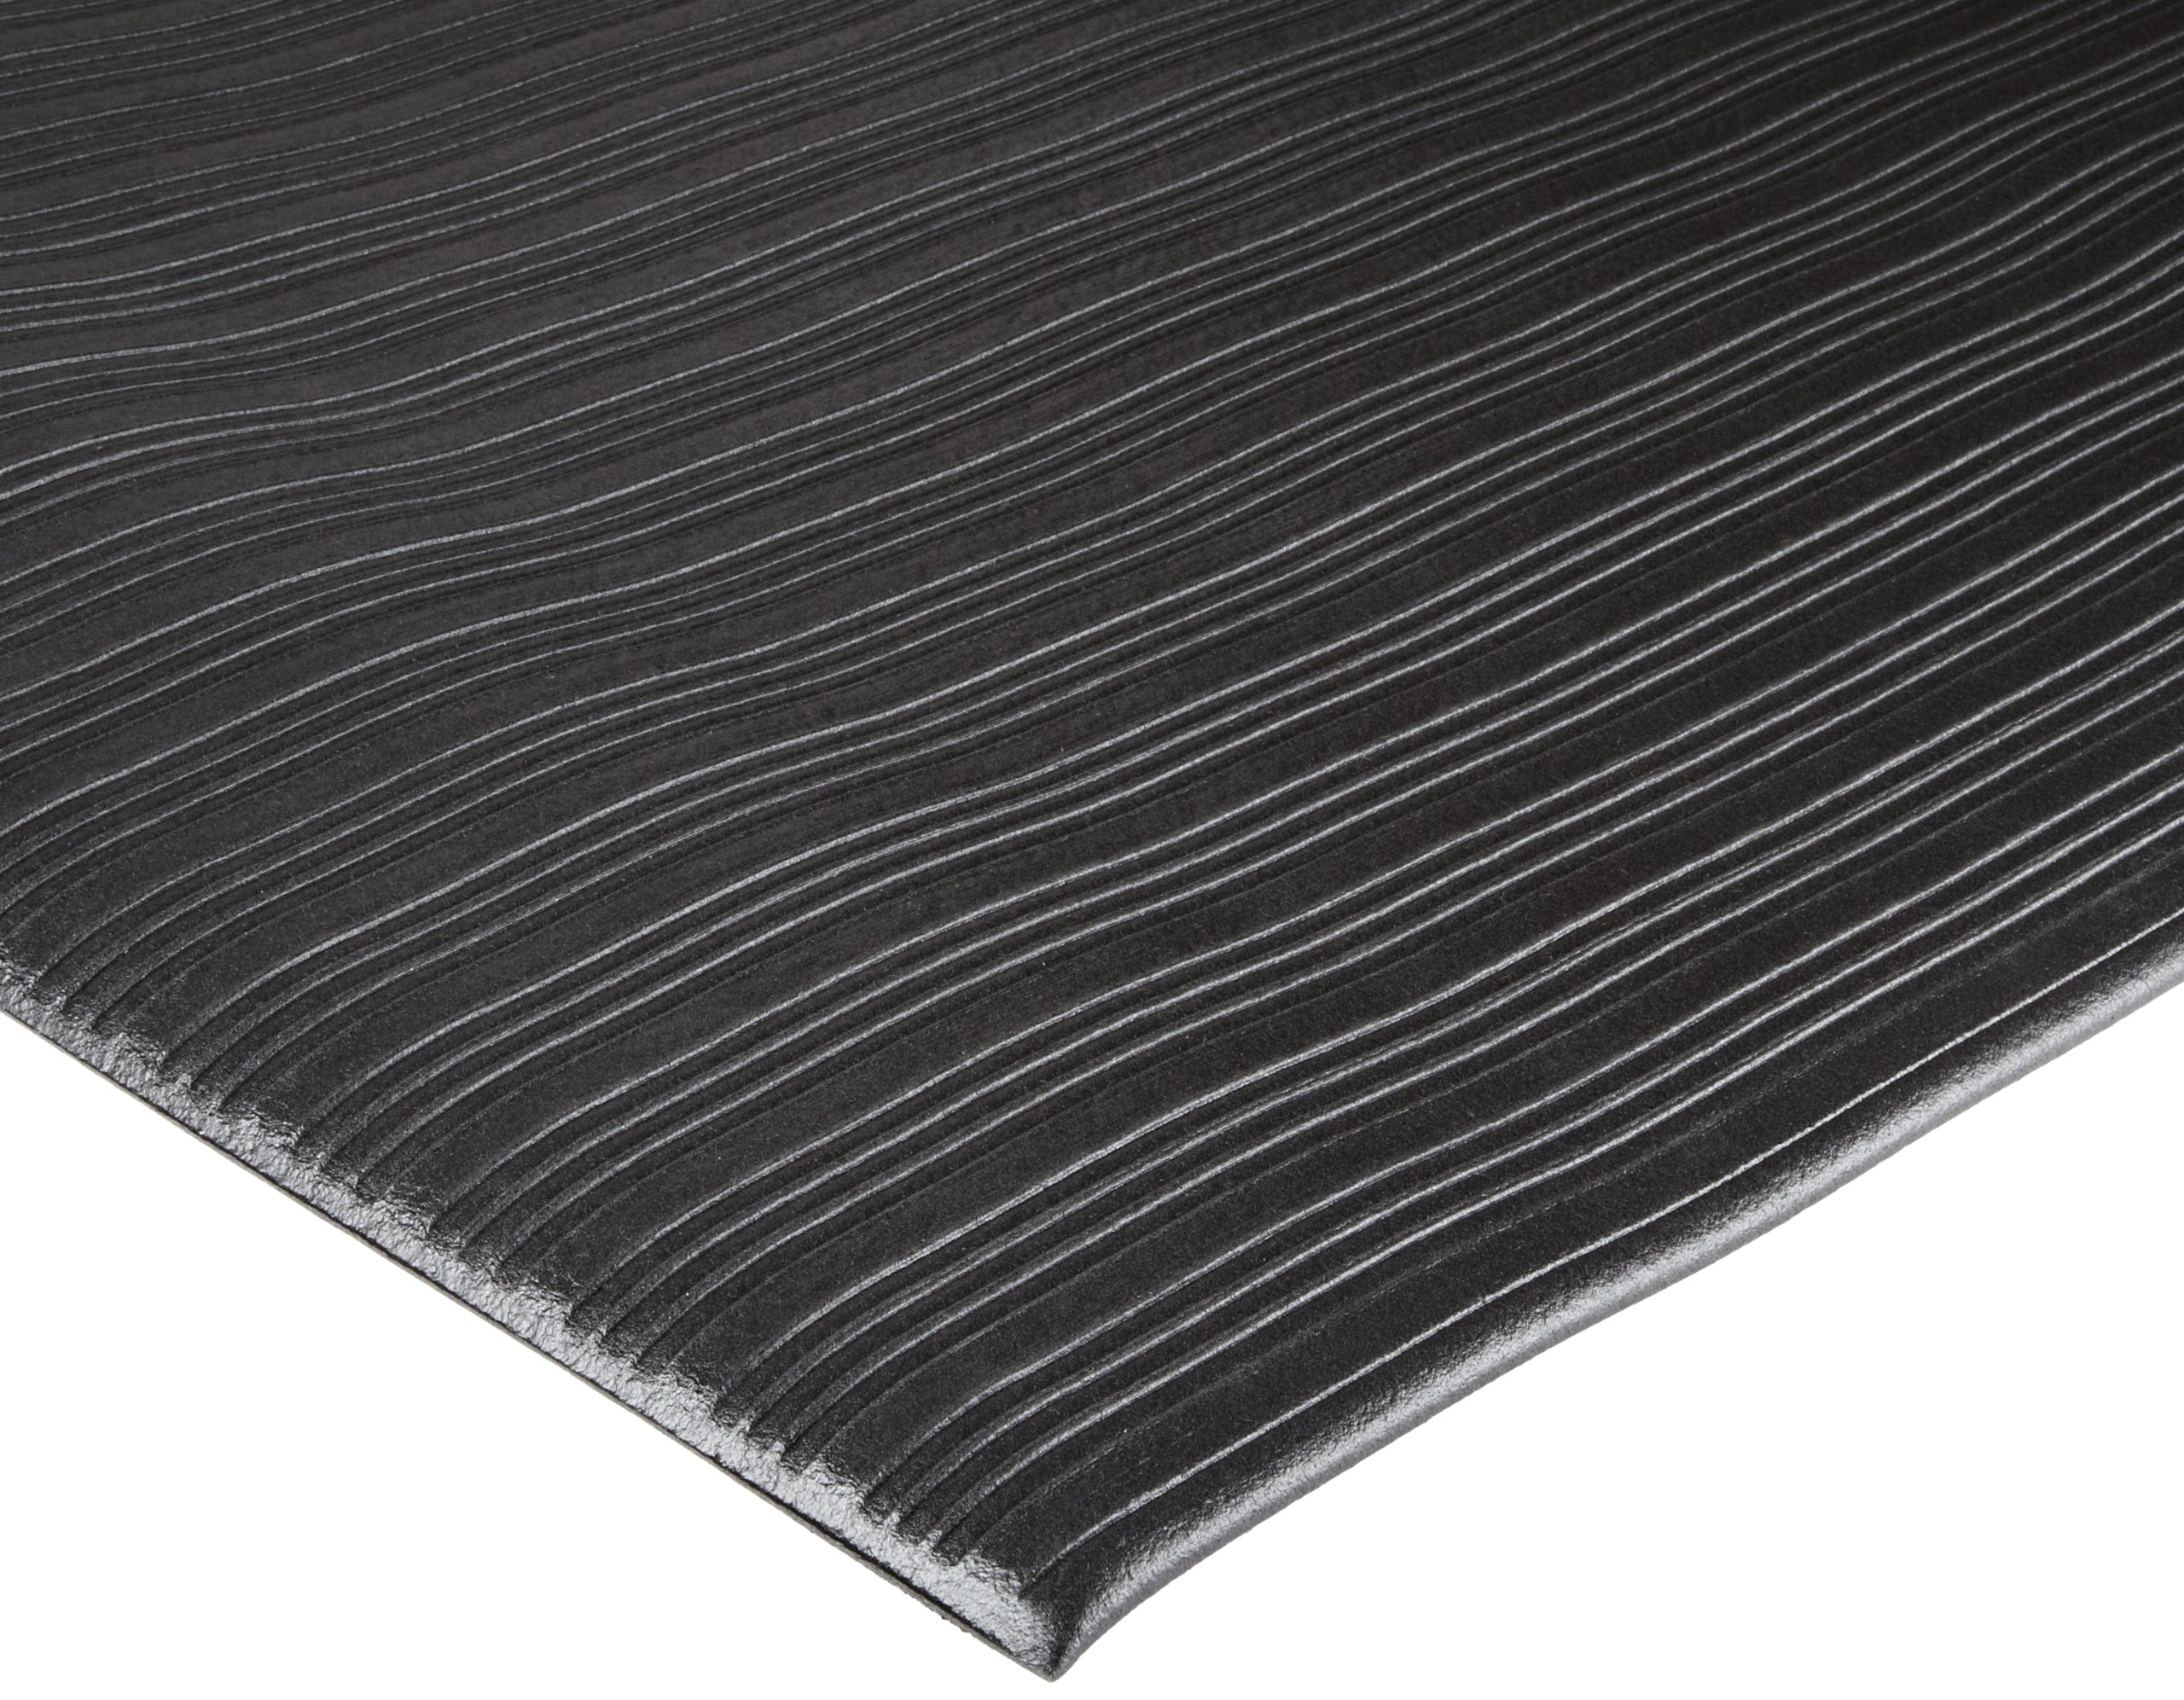 Durable Corporation Vinyl Sof-Spun Standard Anti-Fatigue Mat, For Indoors, 36'' Width x 60'' Length x 3/8'' Thickness, Black by Durable Corporation